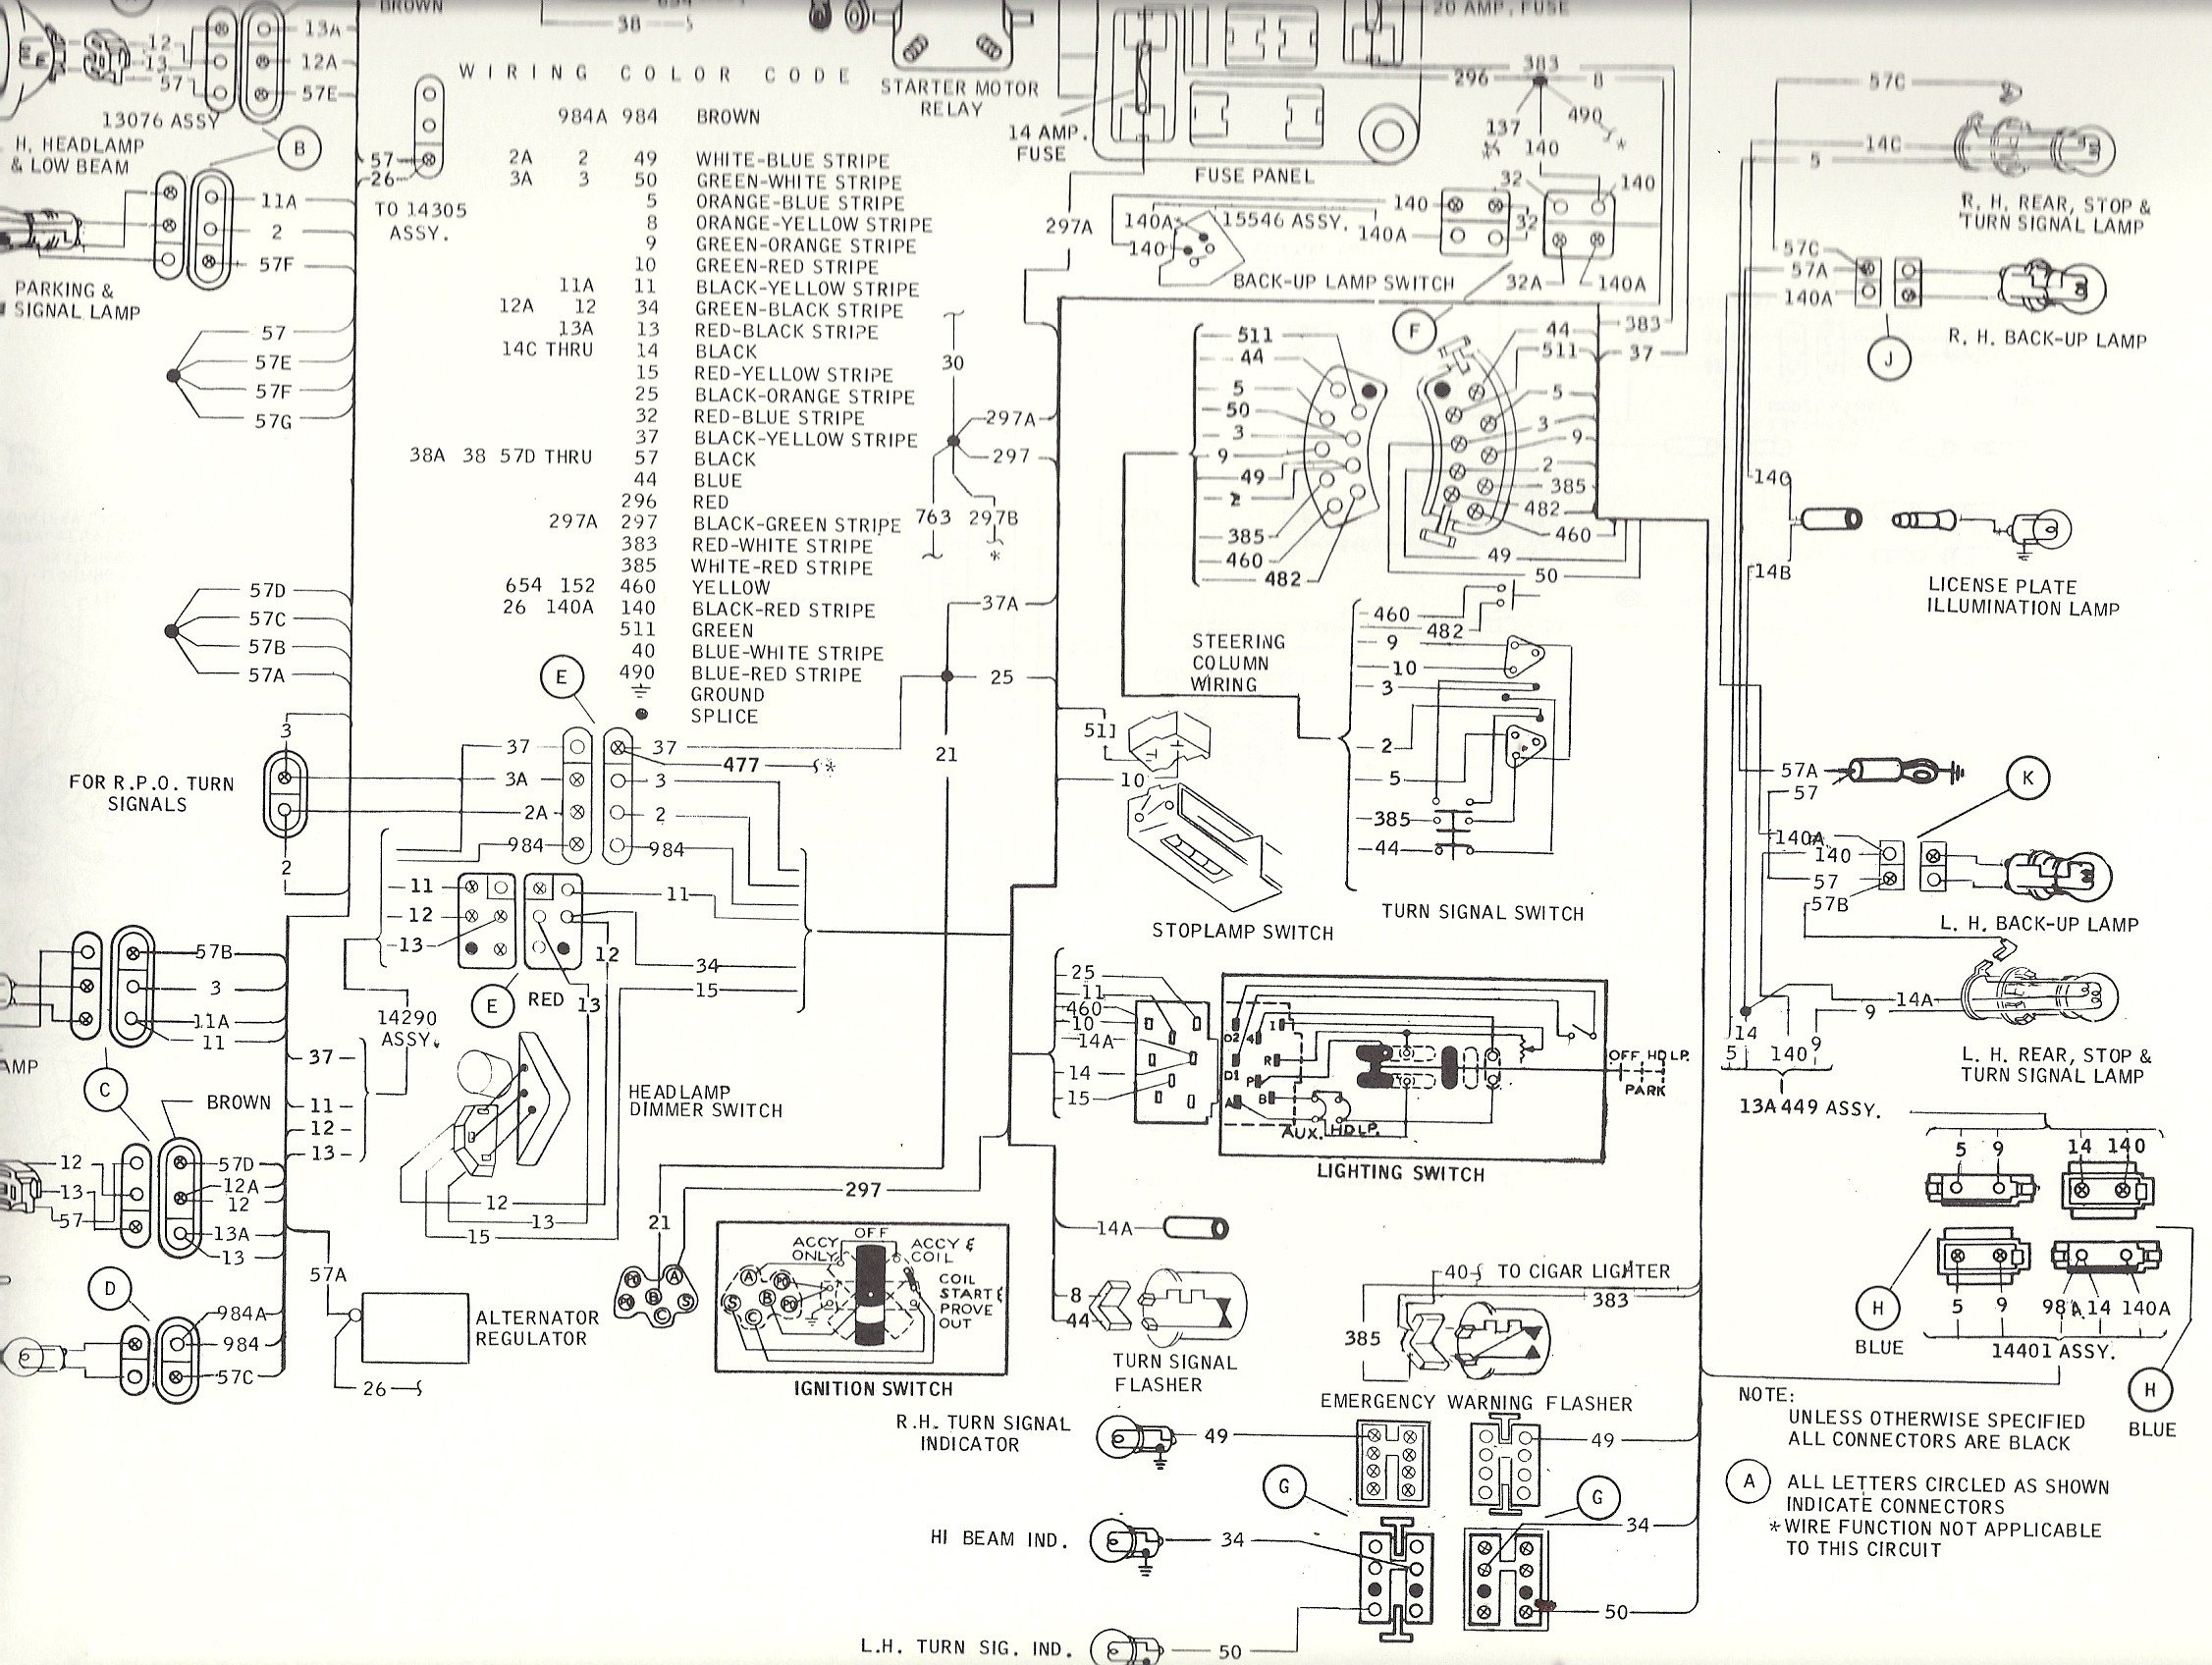 65 ford steering column wiring wiring diagram all data 1973 Ford F100 Wiring Diagram 1964 ford f100 steering column wiring wiring diagrams hubs 1978 bronco steering column wiring 65 ford steering column wiring